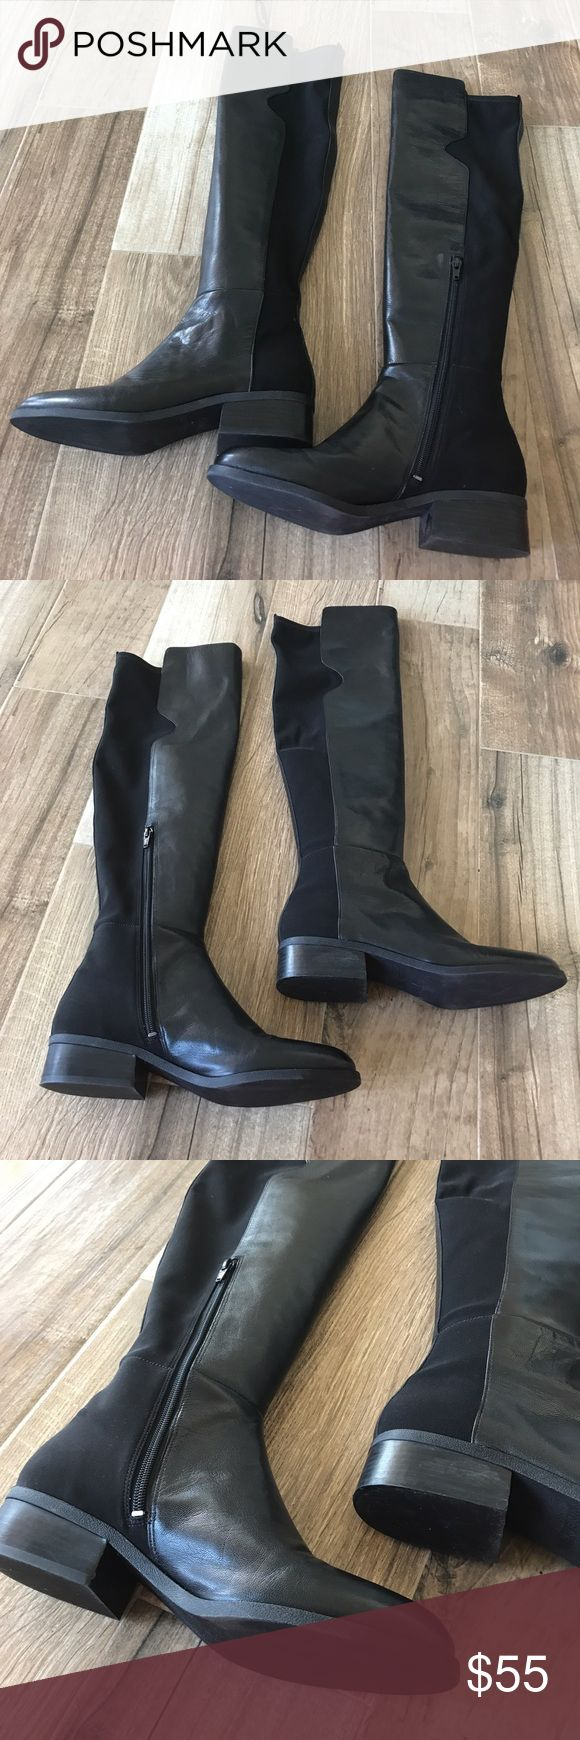 NINE WEST Black Leather Over the Knee Boots Like new! Only worn once inside for a work function. In excellent condition, no flaws. Size 9. Nine West leather zip over the knee boots. these will fit wide calf boot wearers! Nine West Shoes Over the Knee Boots